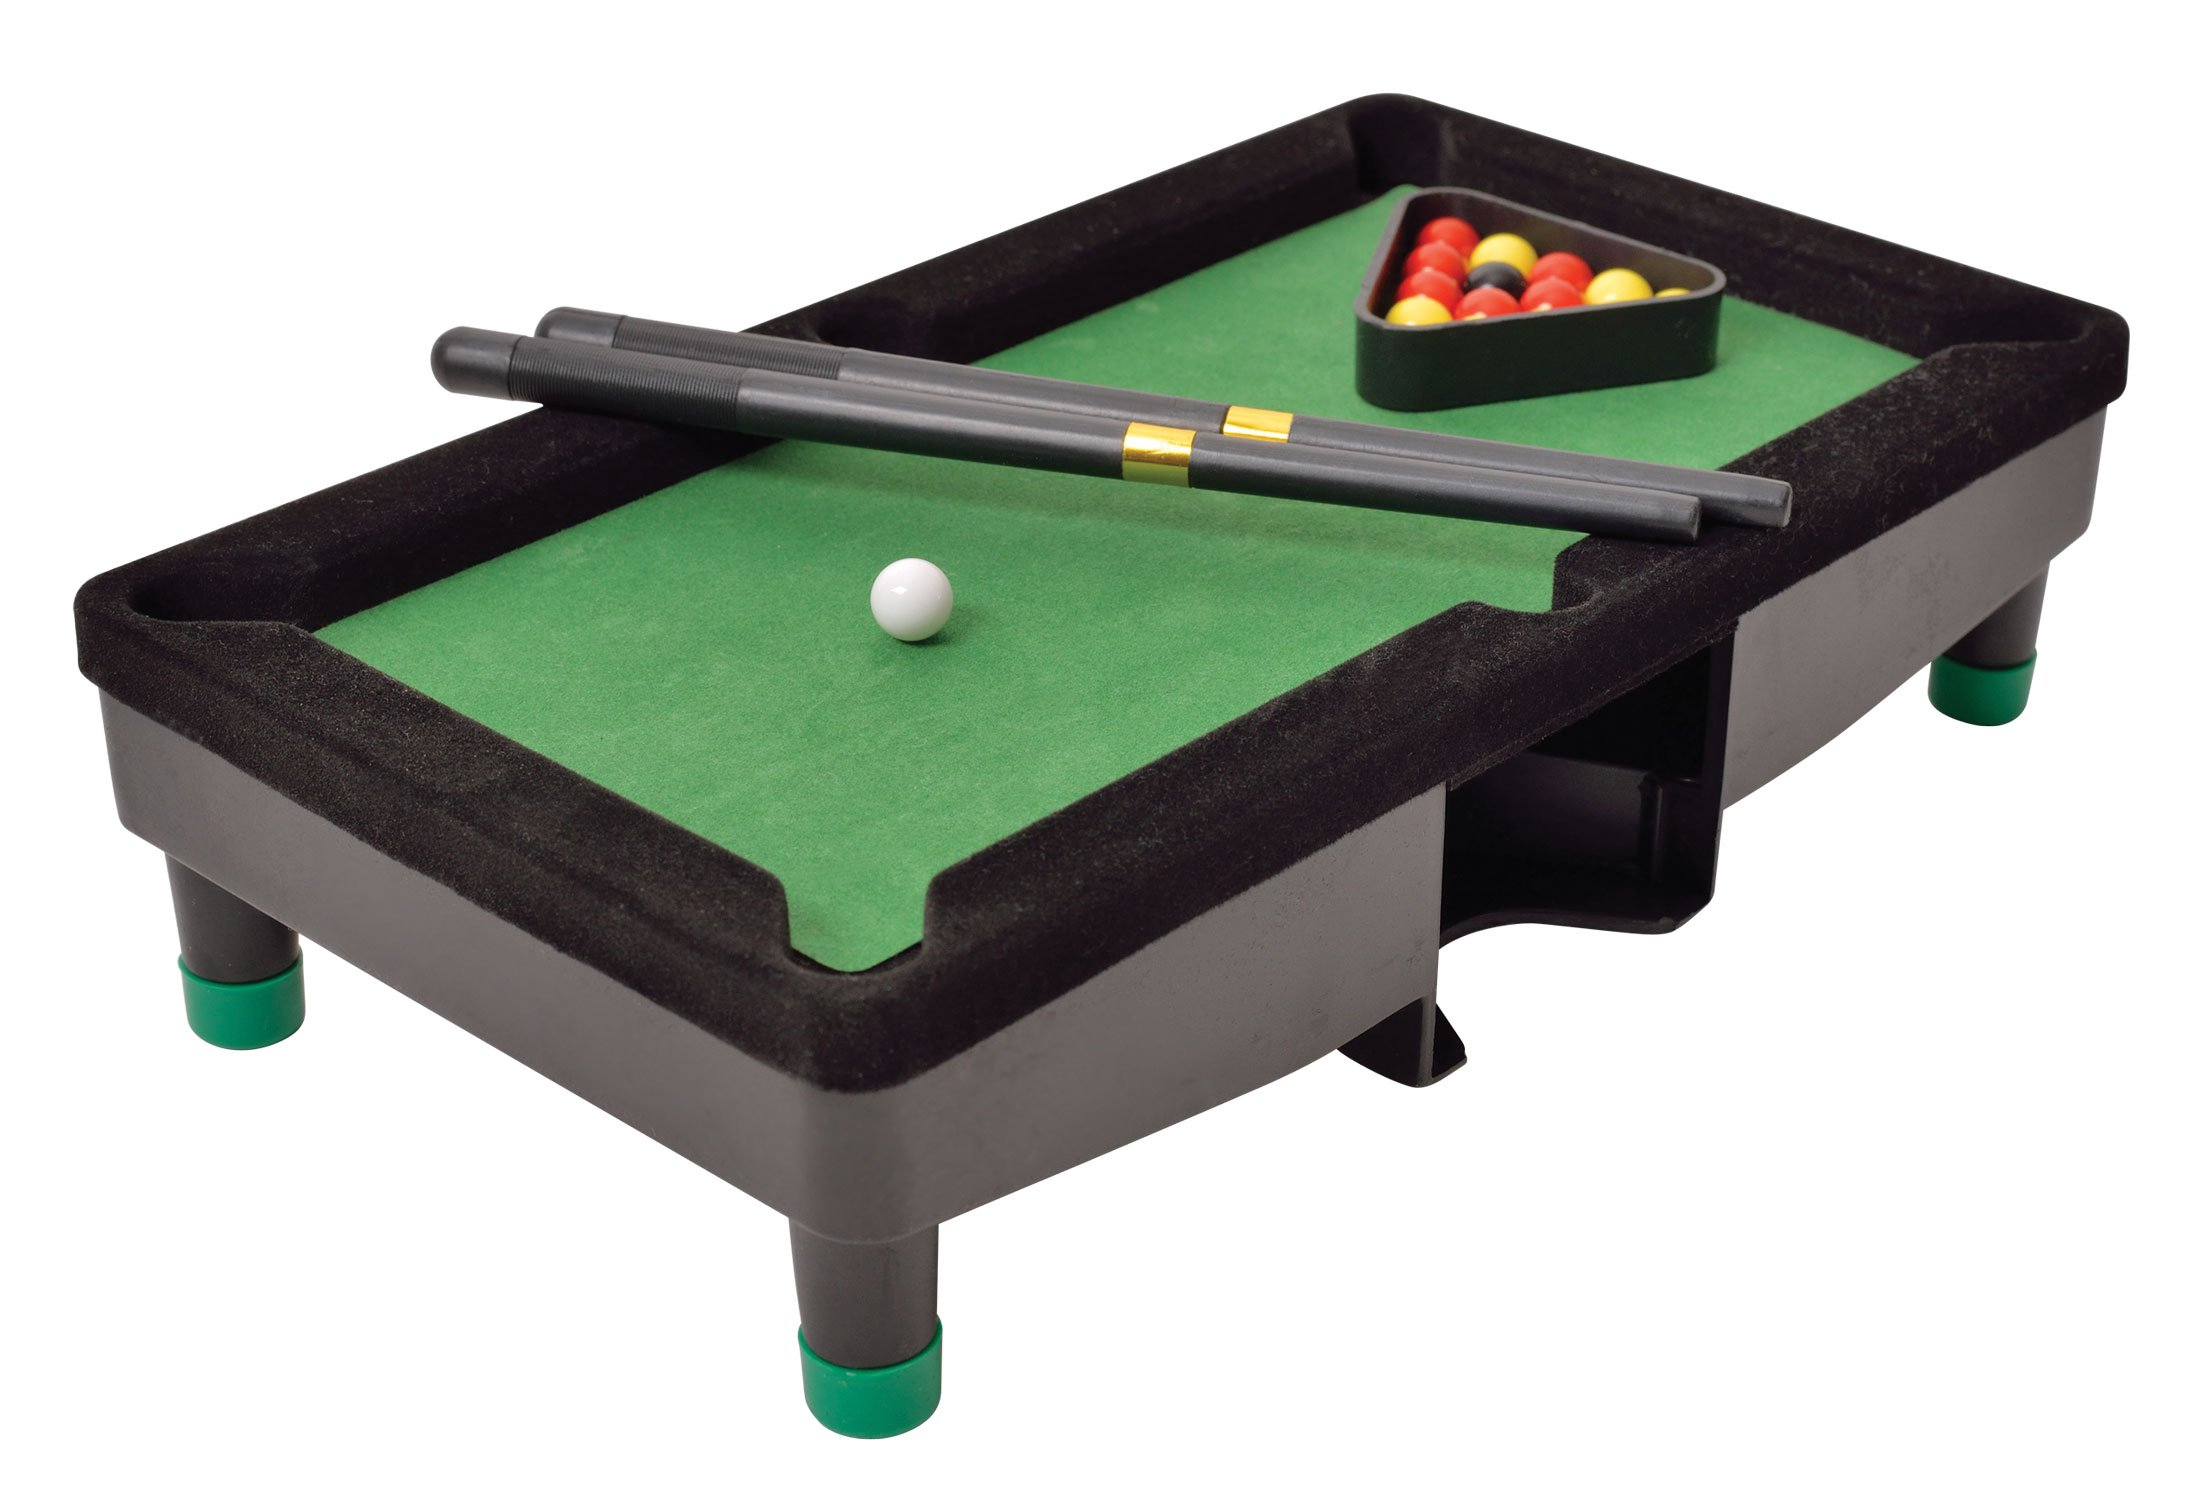 Perfect Life Ideas Desktop Miniature Pool Table Set with Mini Pool Balls Cue Sticks Accessories - Tabletop Toy Gaming for Men Women - Play Billiards Snooker - Home Office Desk Stress Relief Games by